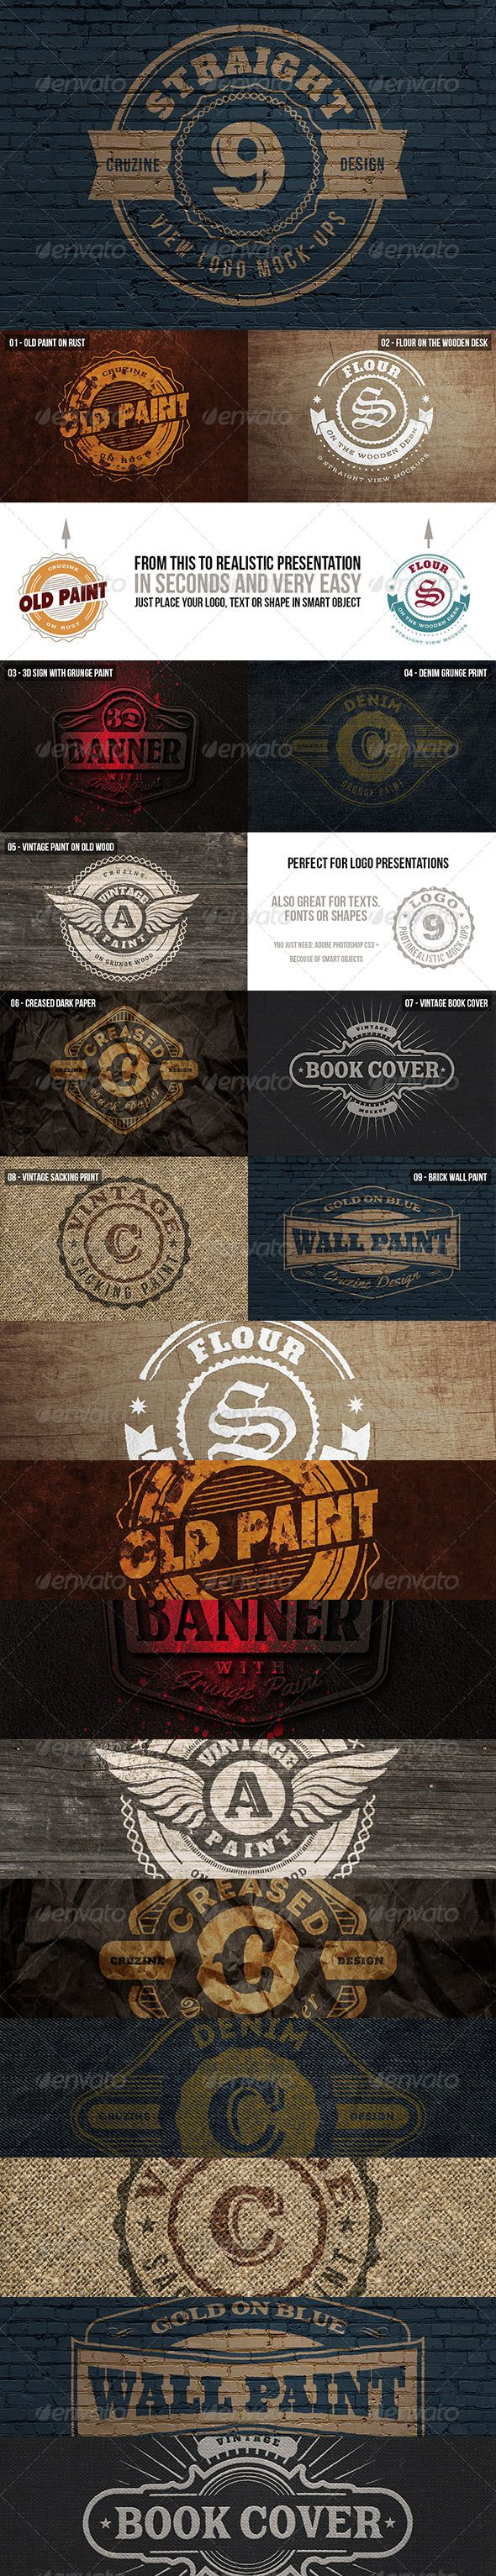 Straight View Logo Mock-ups - http://graphicriver.net/item/straight-view-logo-mockups/5984081?ref=cruzine